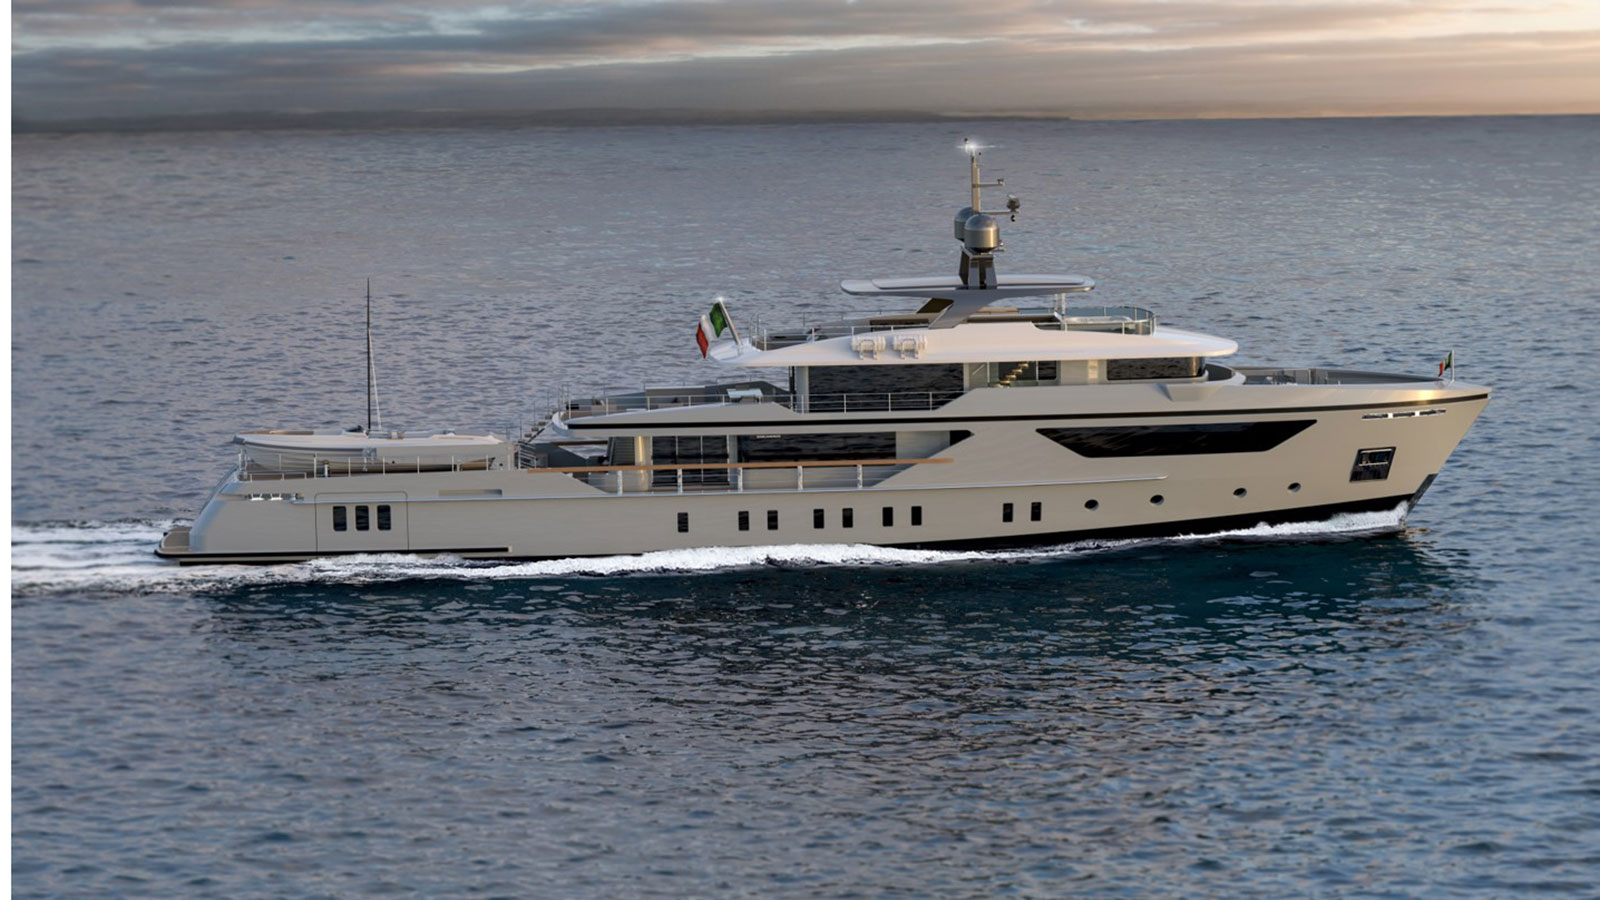 the-sanlorenzo-500-exp-superyacht-will-be-available-in-an-e-motion-electric-version